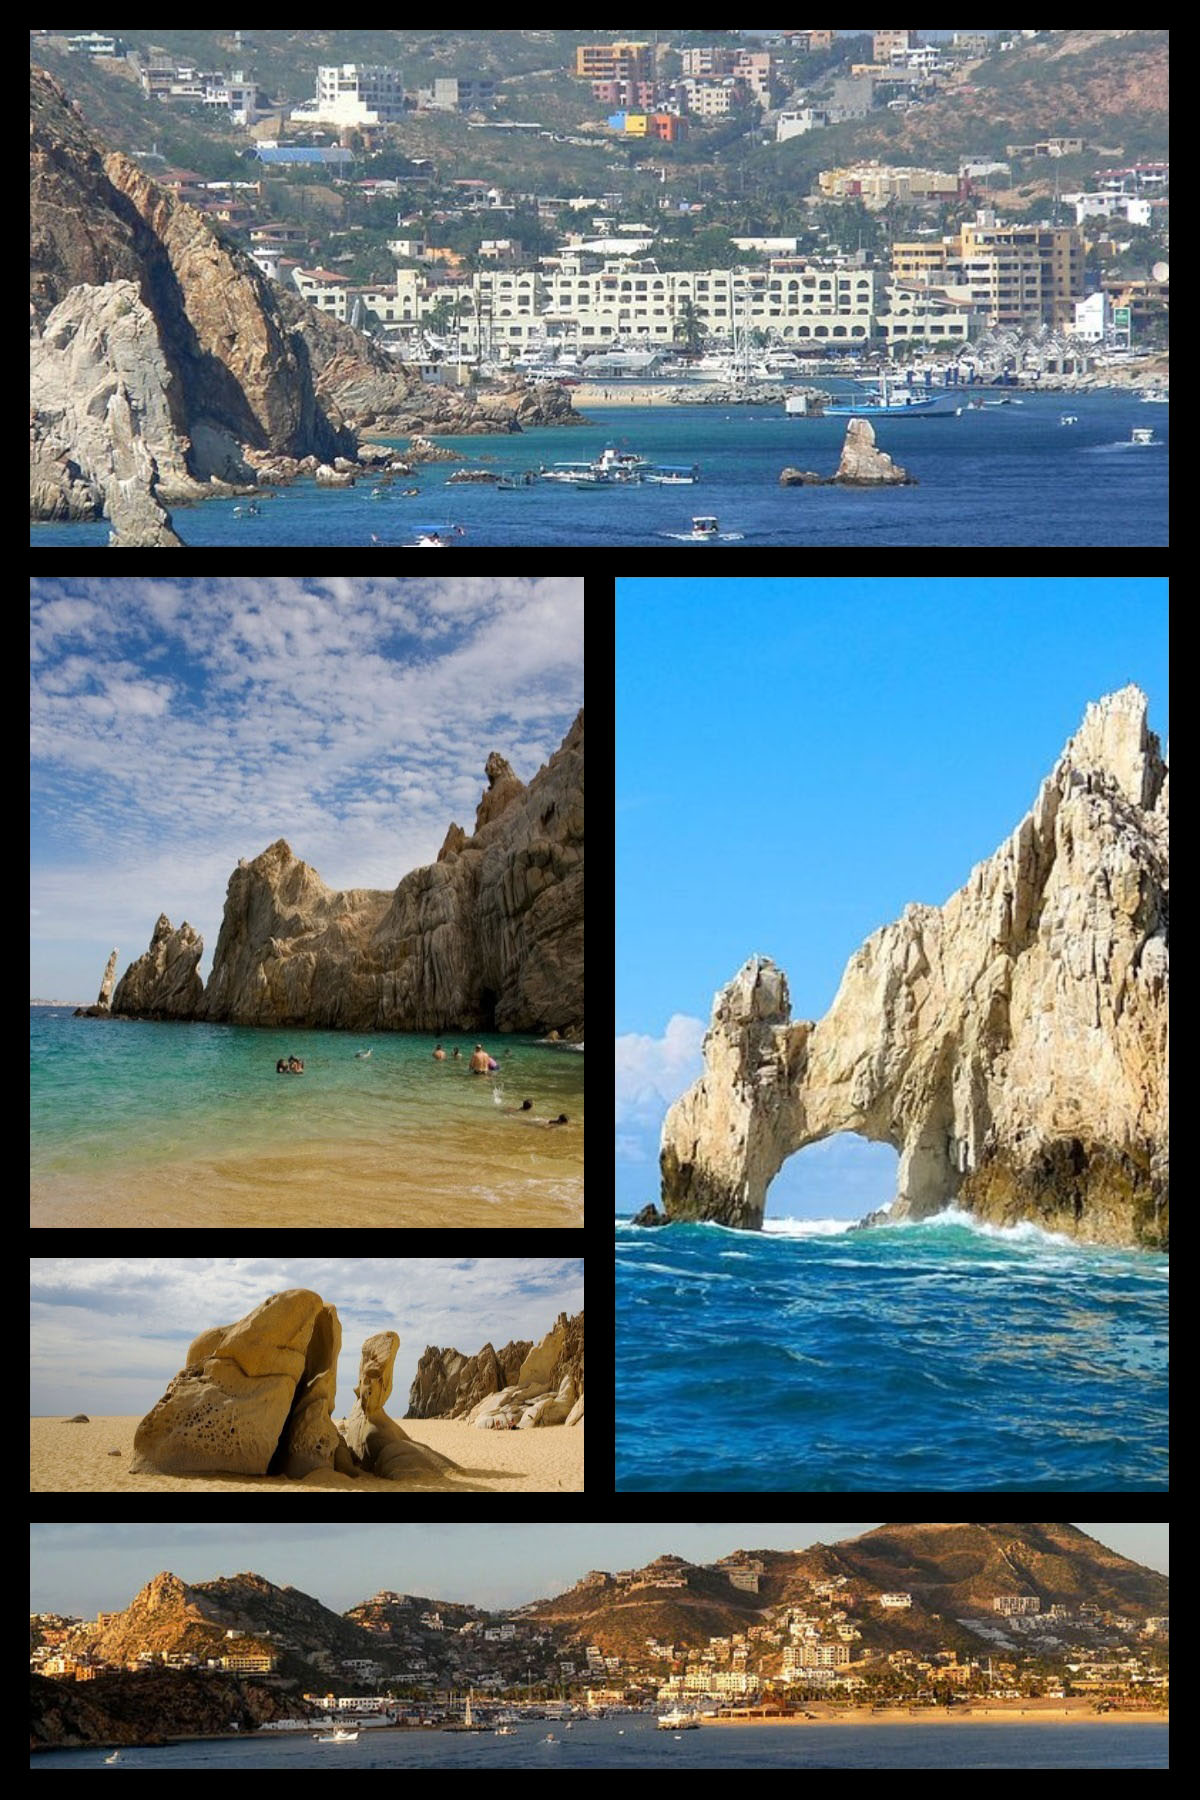 Cabo San Lucas - Wikipedia Cabo Downtown Map Of Resorts Near on map of playa grande resort in cabo, map of cabo san jose del cabo resorts, map of los cabos, map of baja, map of beaches cabo, map of misiones del cabo, map of concord nh streets, map of medano beach, map of properties in san jose del cabo, map with resturants in cabo, secrets resort in cabo, printable maps of cabo, map of marina cabo, map of cabo st. lucas, map of cabo area,